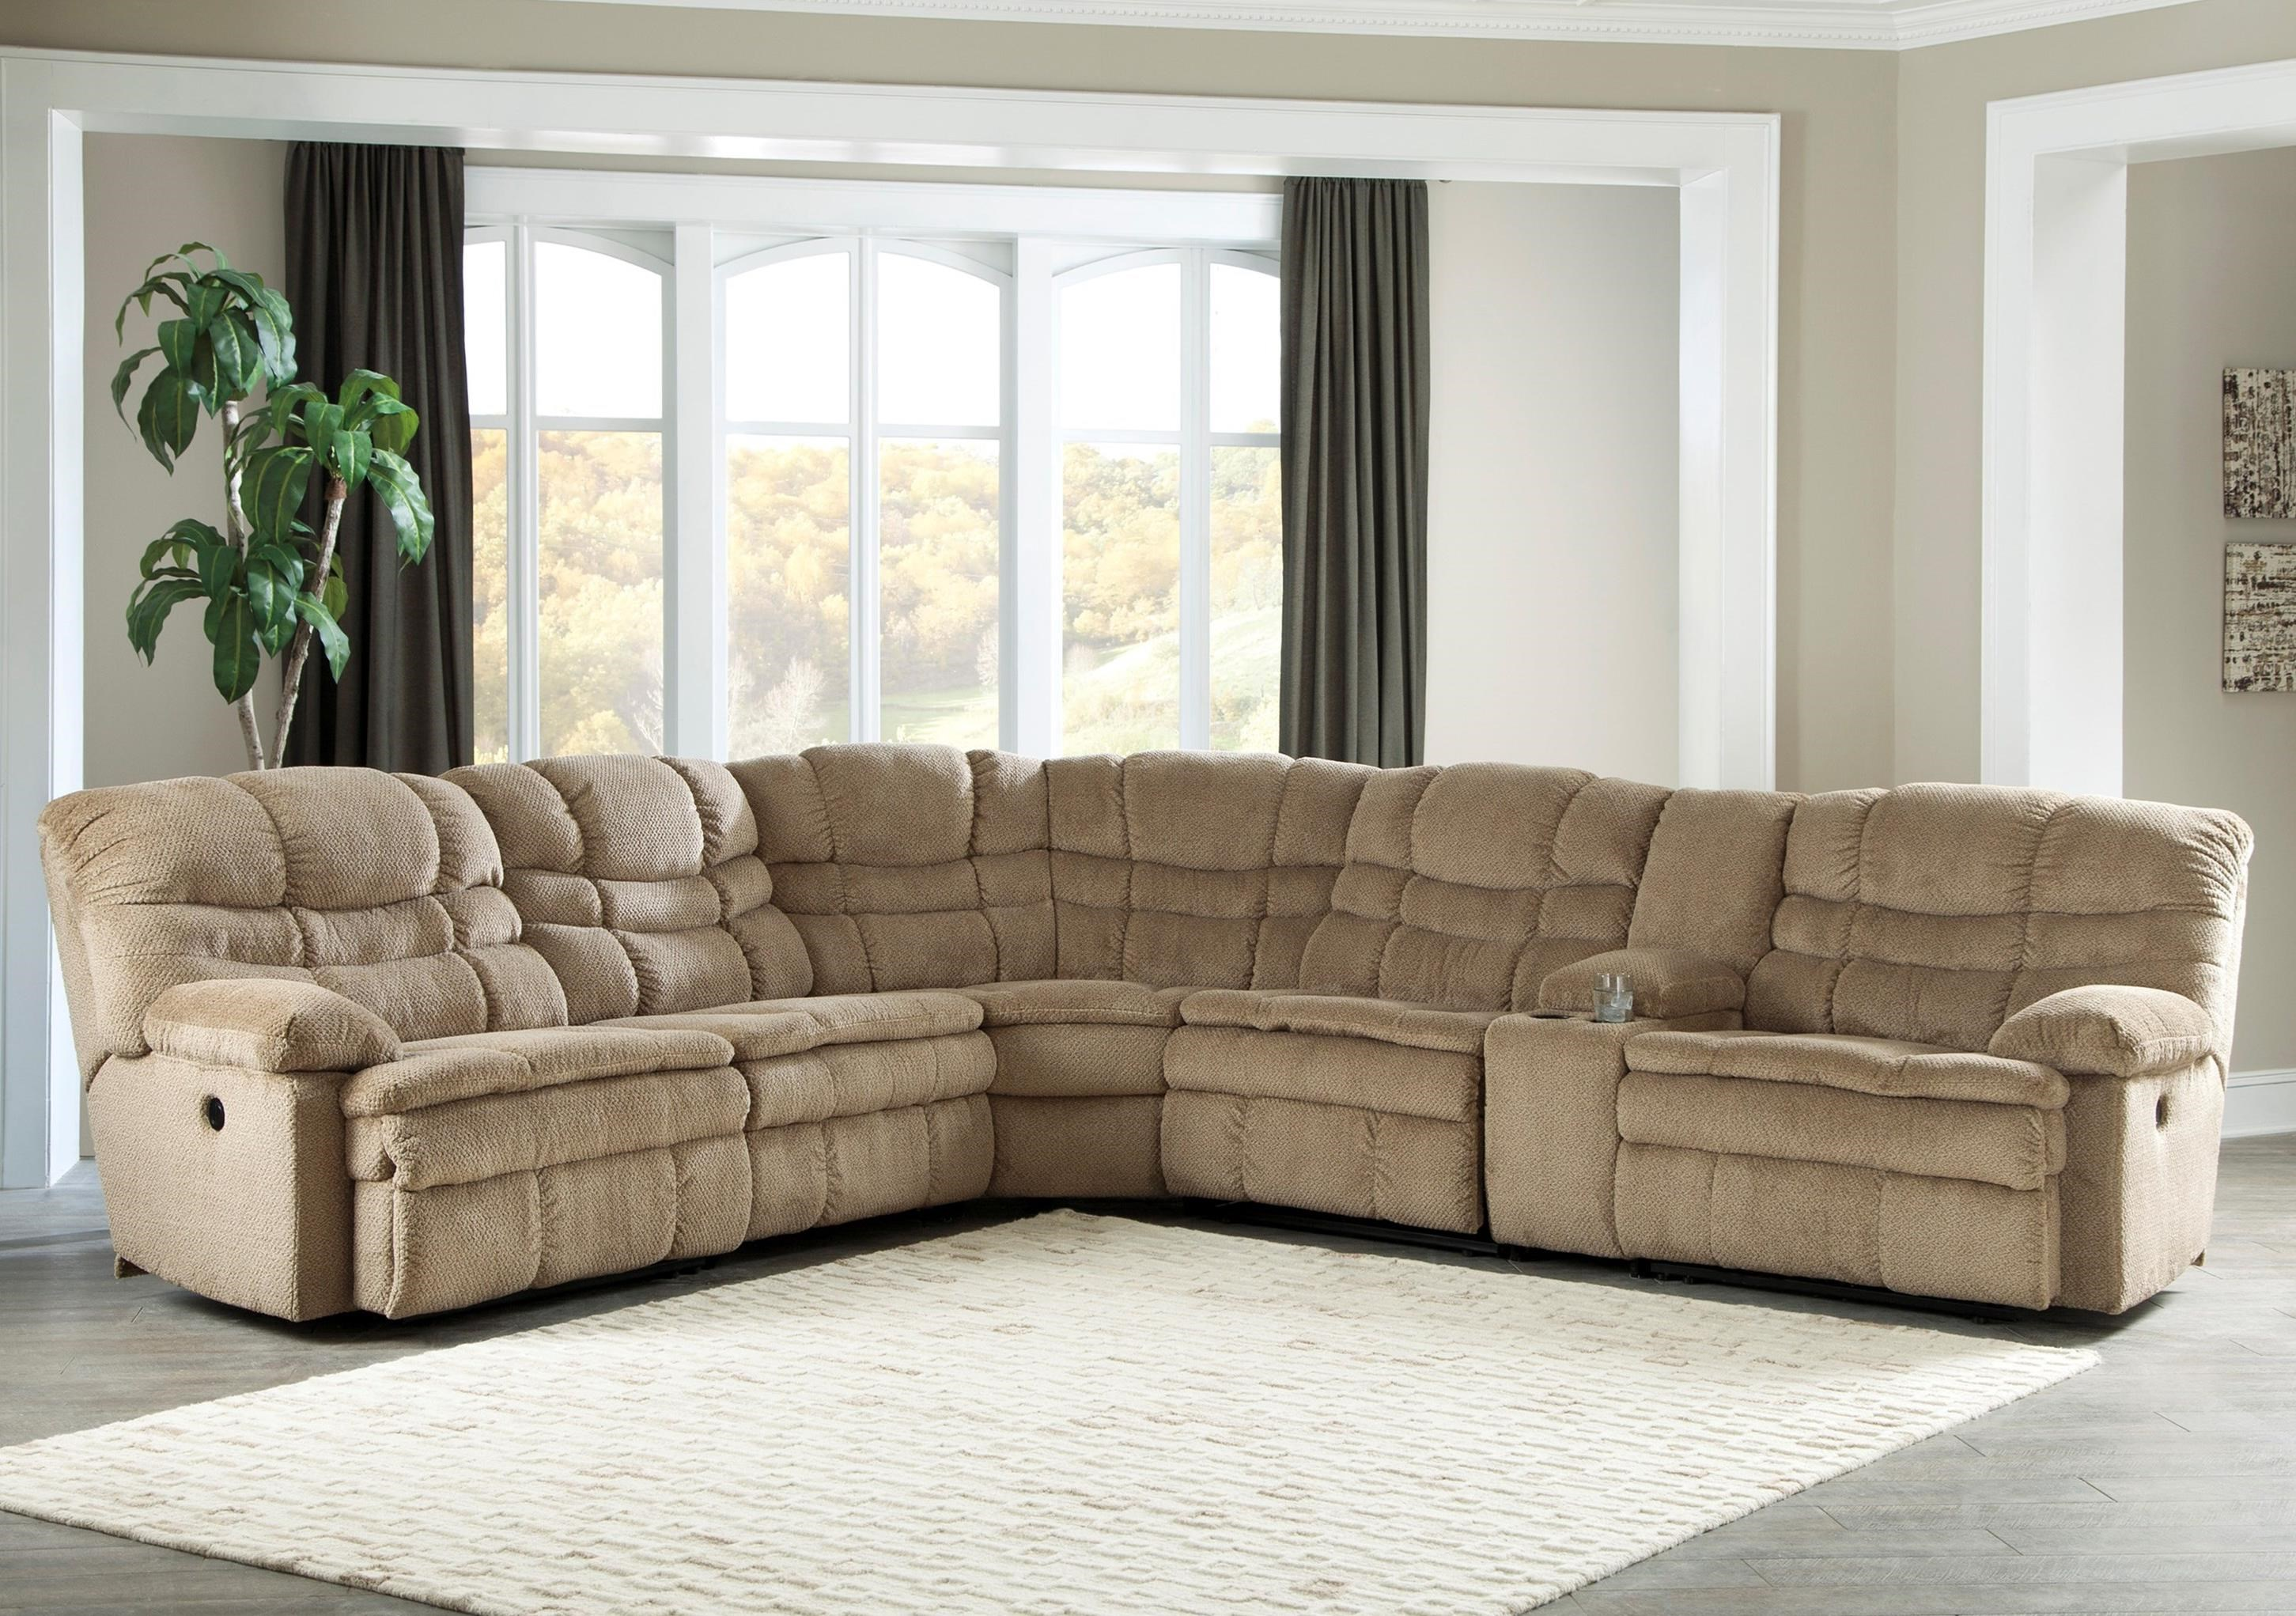 Signature Design by Ashley Zavion 6Pc Power Recl Sectional w/ Storage Console - Item Number: 6630358+46+77+19+77+62